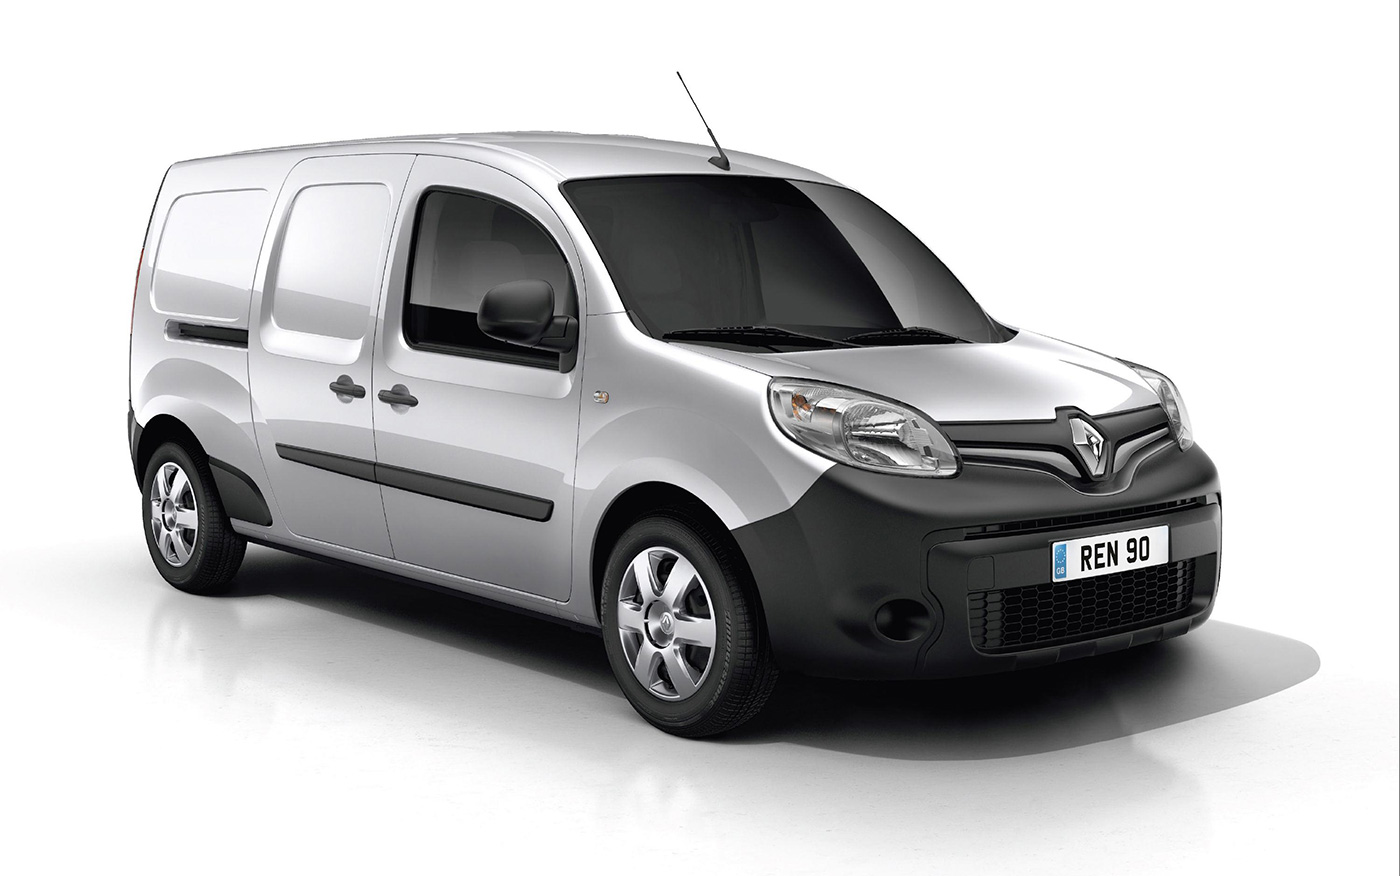 Renault Kangoo Ll 21 Energy DCi 110 Business+